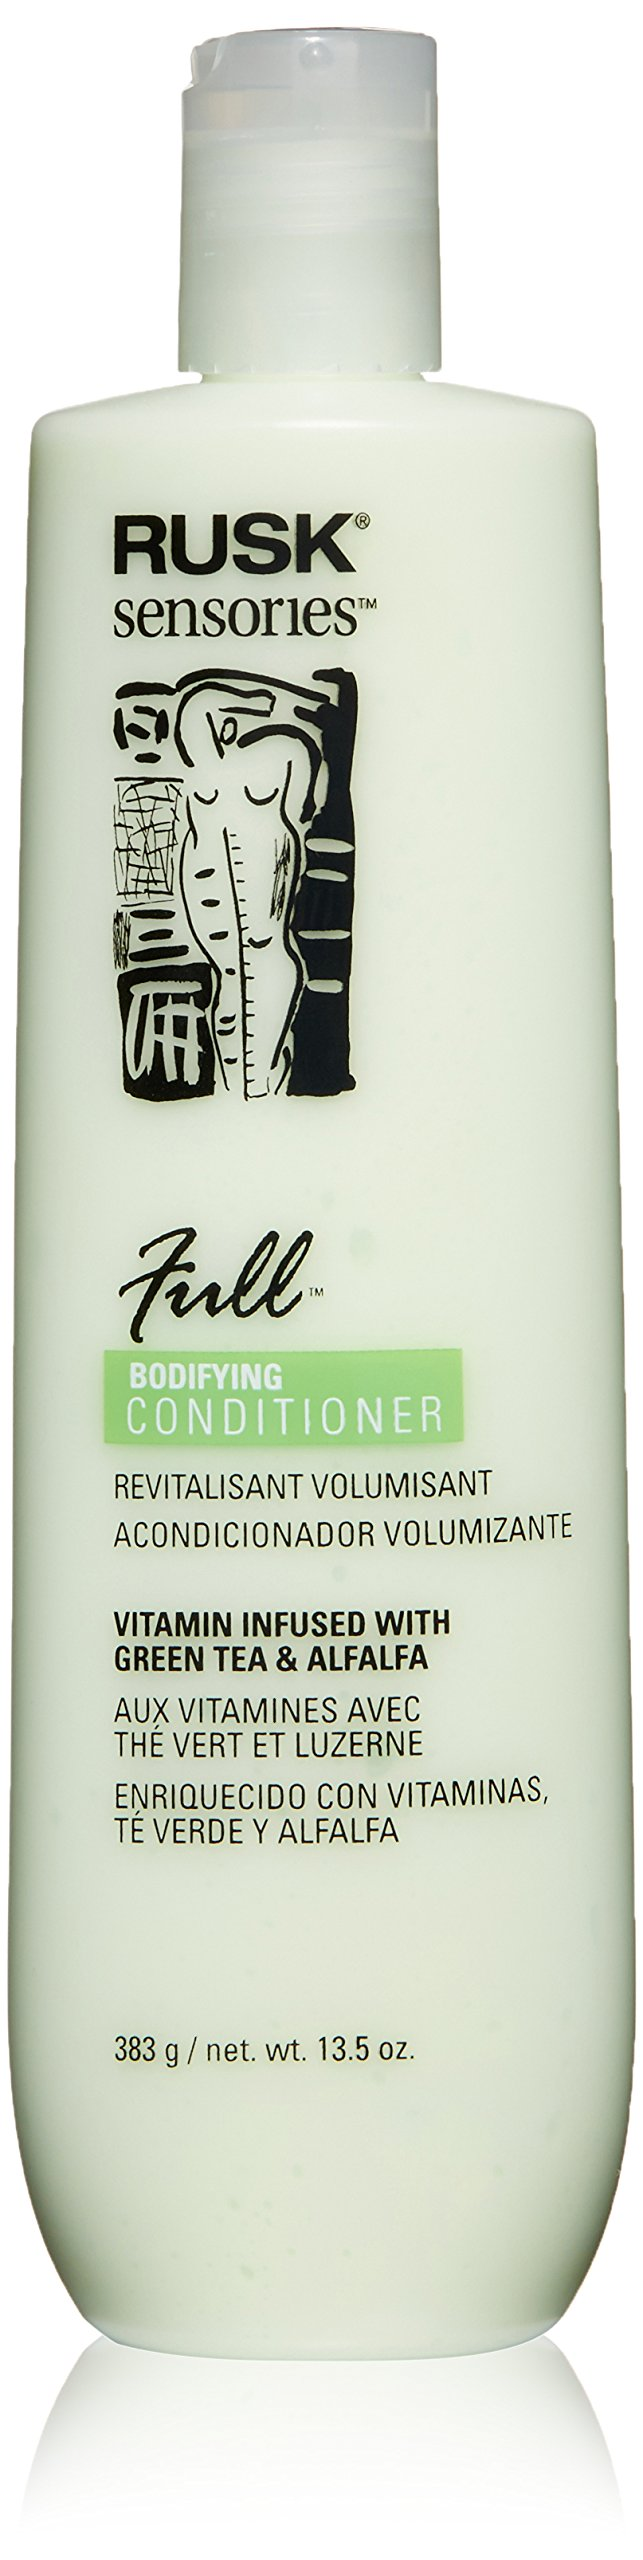 RUSK Sensories Full Green Tea and Alfalfa Bodifying Conditioner , 13.5 oz.